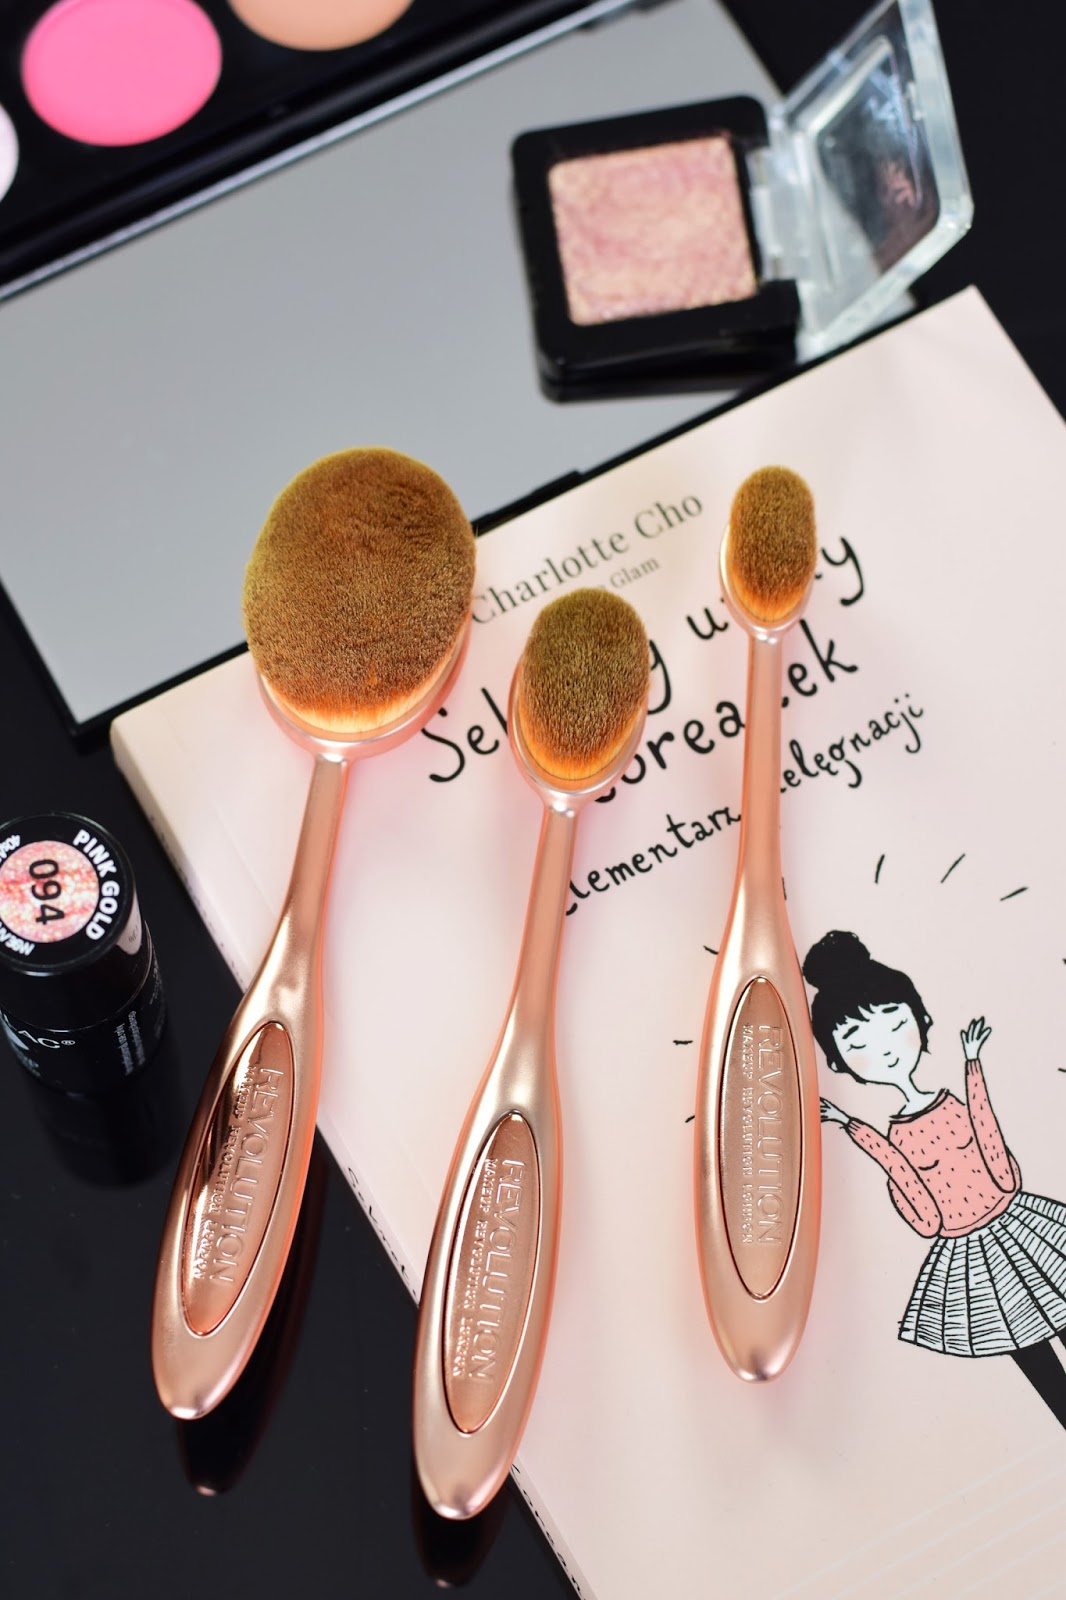 makeup_revolution_brush_oval_face_oval_cheek_oval_shape_opinie_recenzja_blog